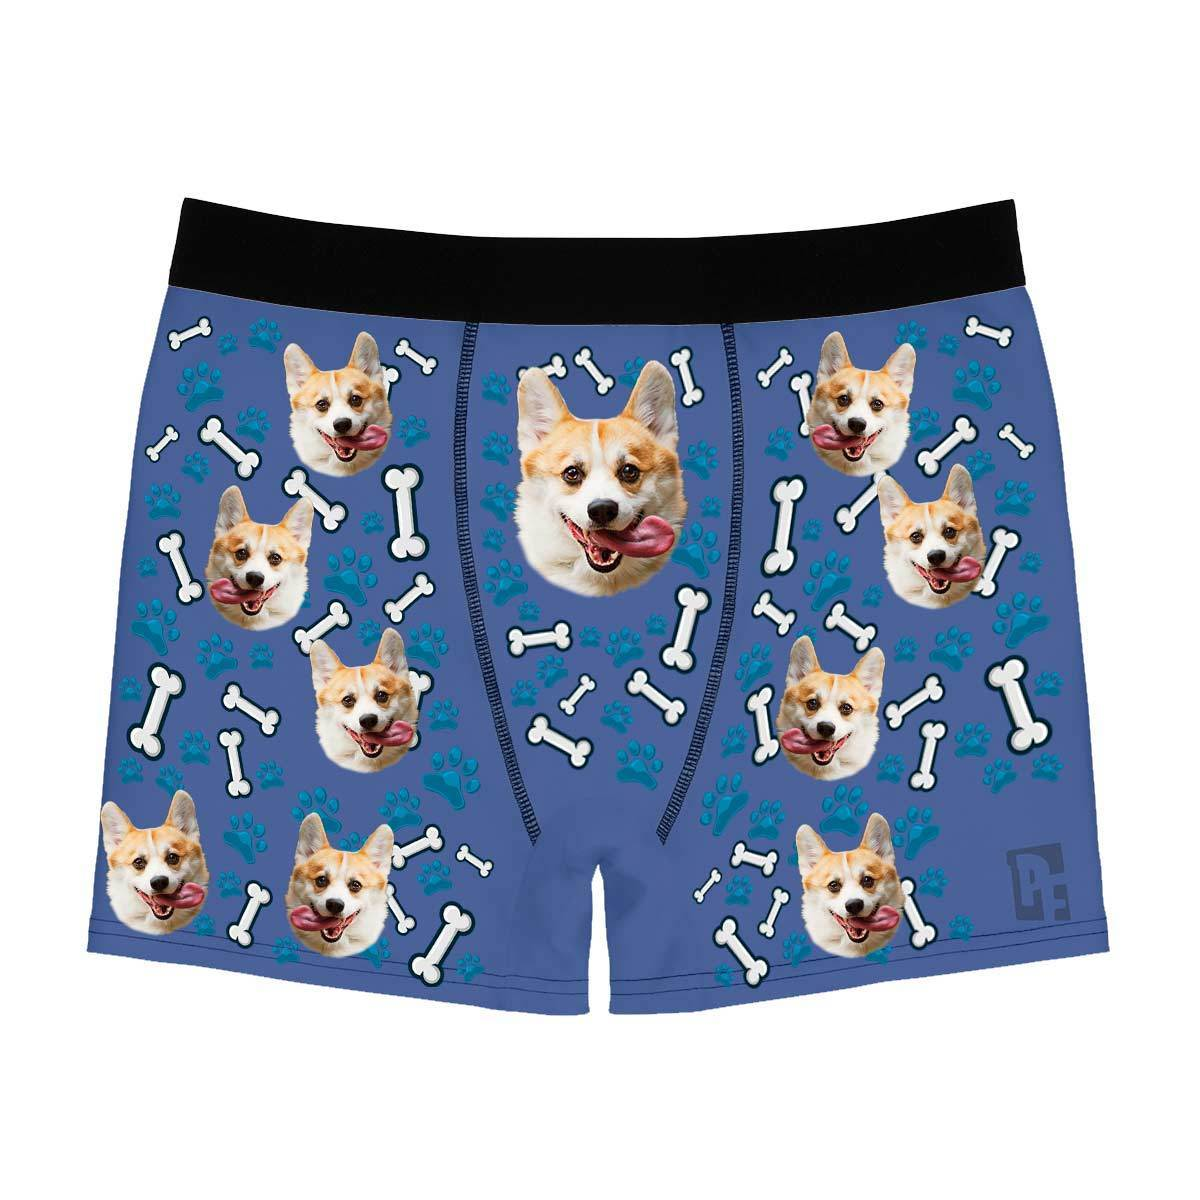 Darkblue Dog men's boxer briefs personalized with photo printed on them